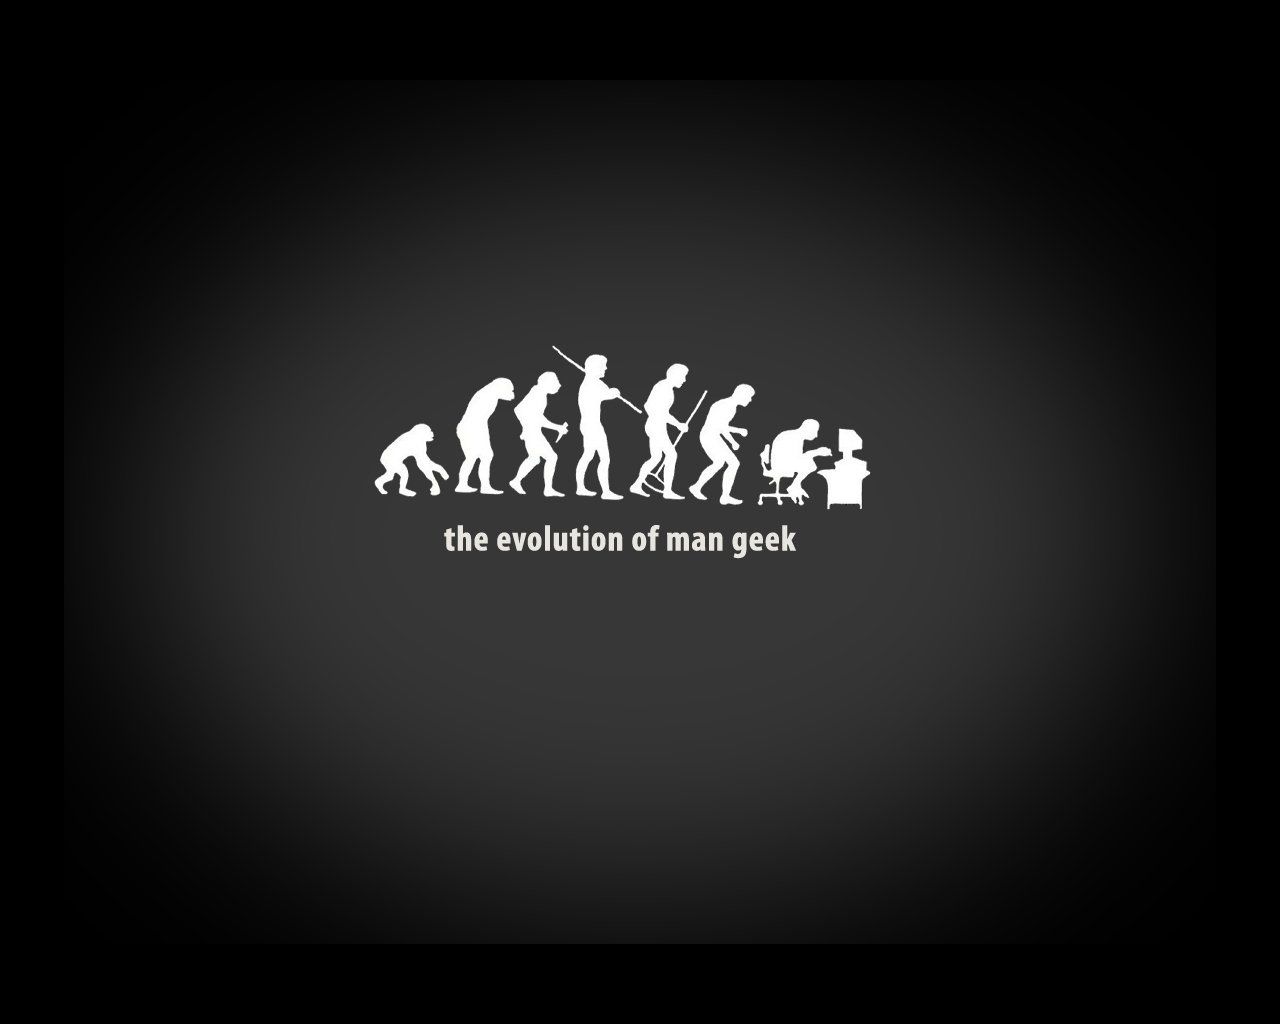 Evolution Of Man Geek